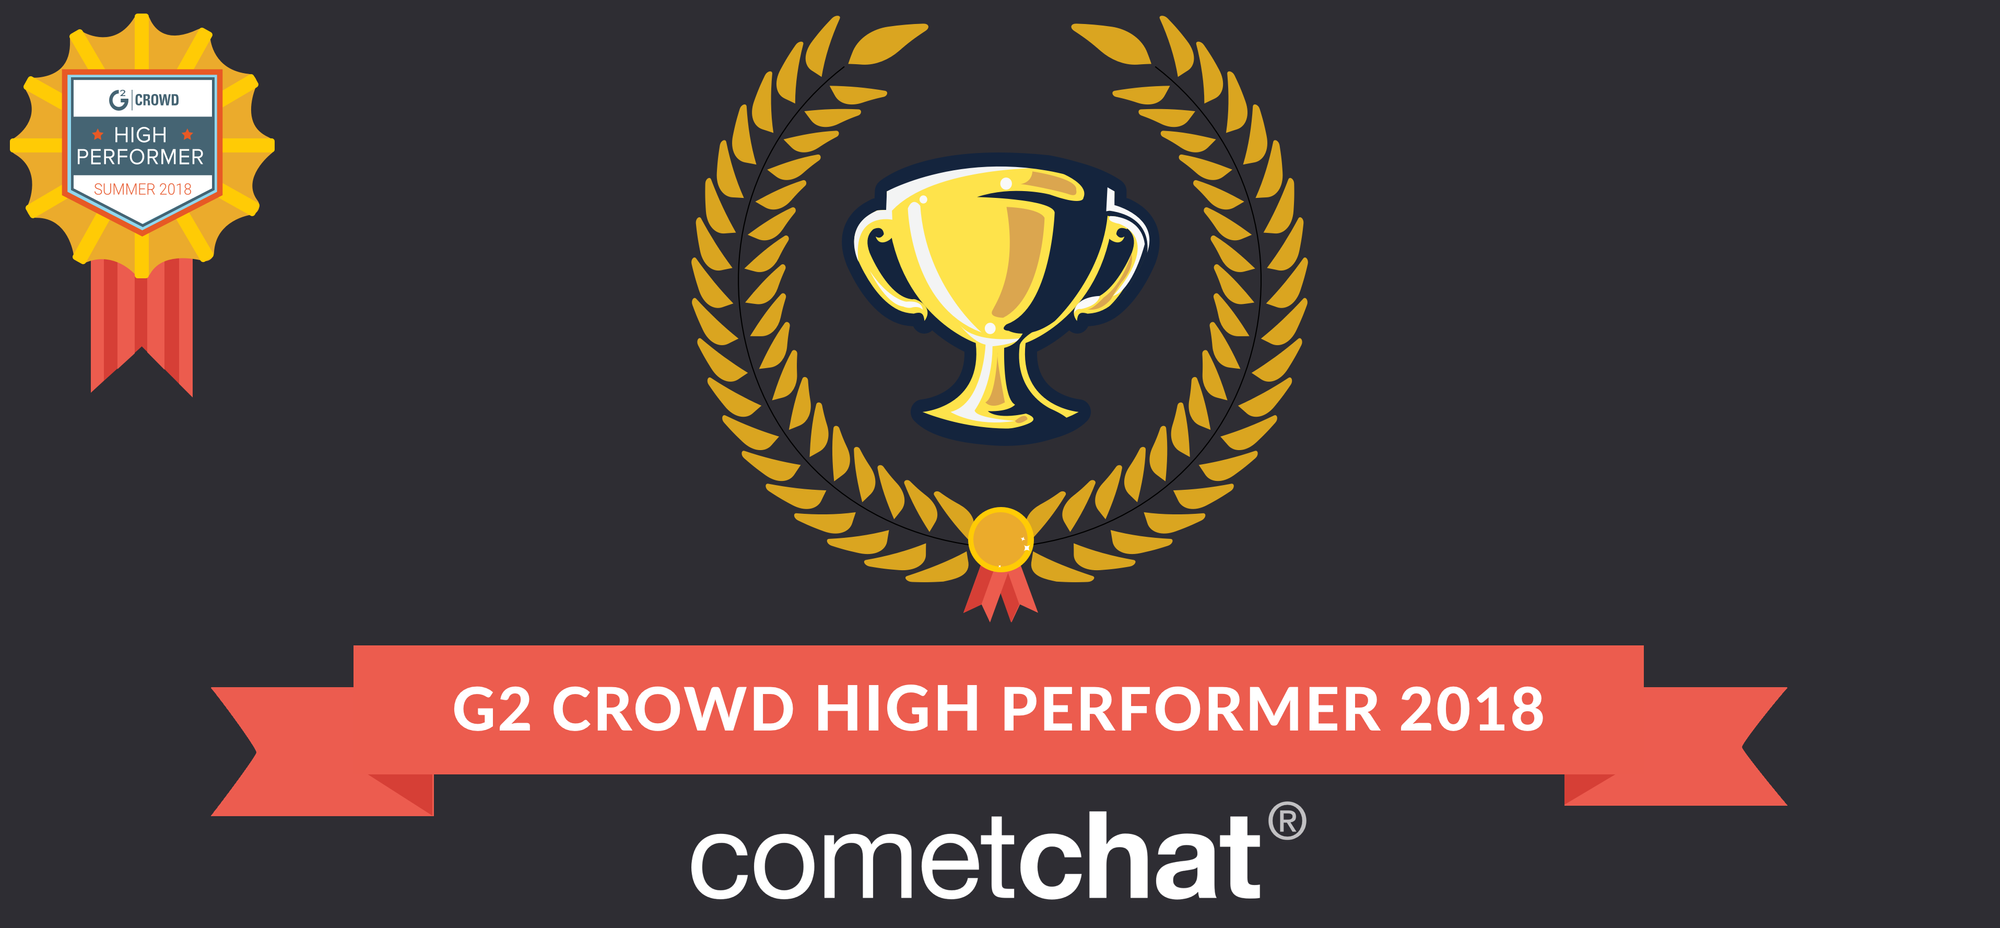 CometChat awarded as a High Performer by G2 Crowd